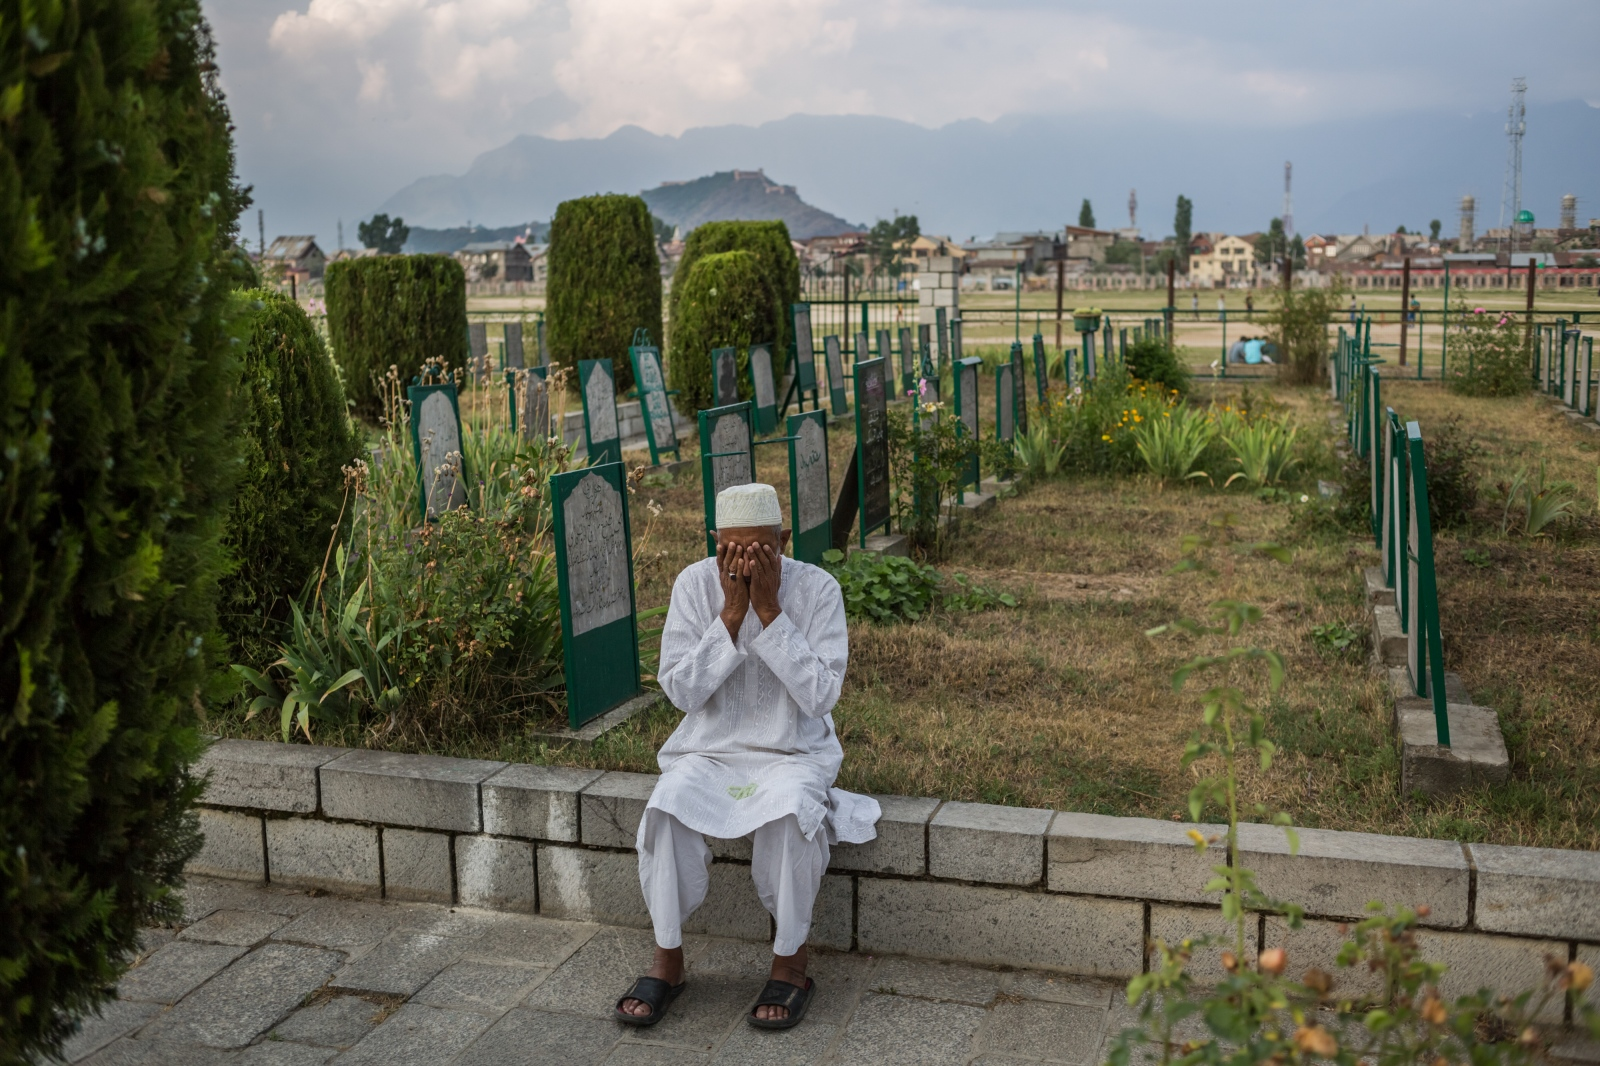 Kashmiri resident Hamidullah Khan, 65, wipes his hands over his face after singing a prayer at the Martyrs' Graveyard in the Eidgagh area of downtown Srinagar on June 11, 2016. Khan lives in Eidgagh and comes to the graveyard almost every day, to offer prayers for those killed in Kashmir's unrest and help tend to the area.